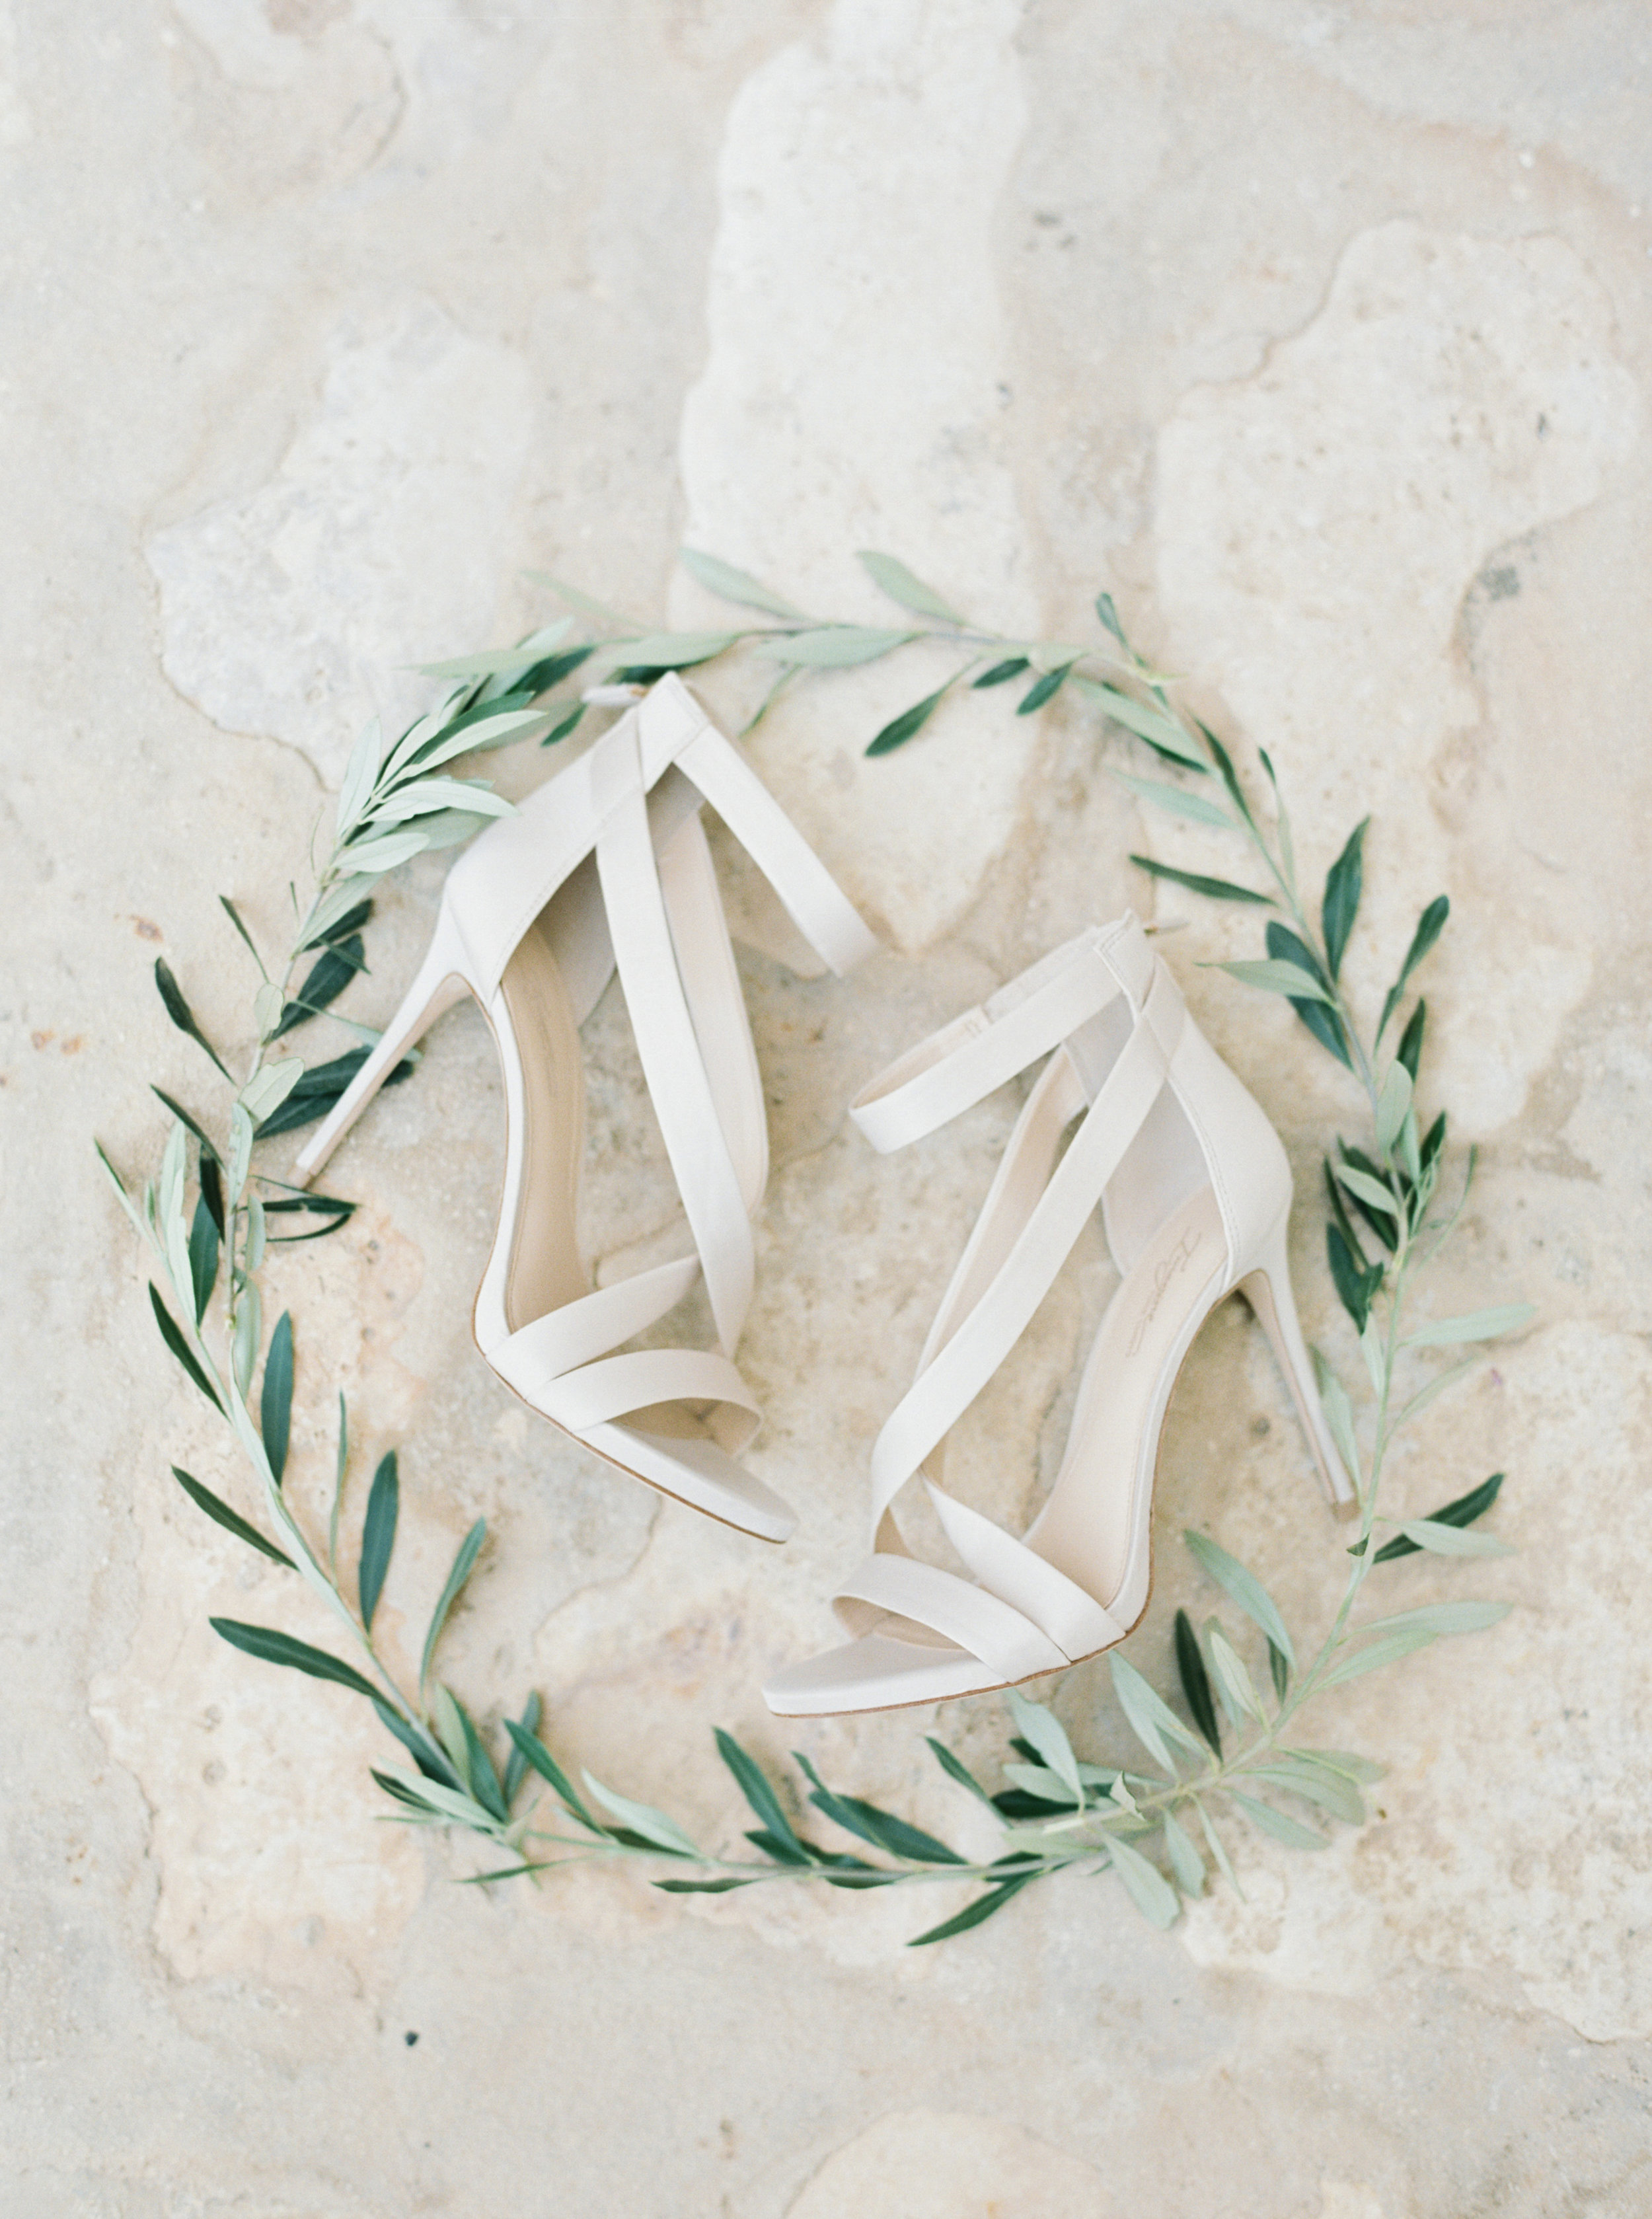 Vince Camuto shoes - Puglia, Italy destination wedding by Meggie Francisco Events, photographed by Tracy Enoch, video by Innar Hunt Films